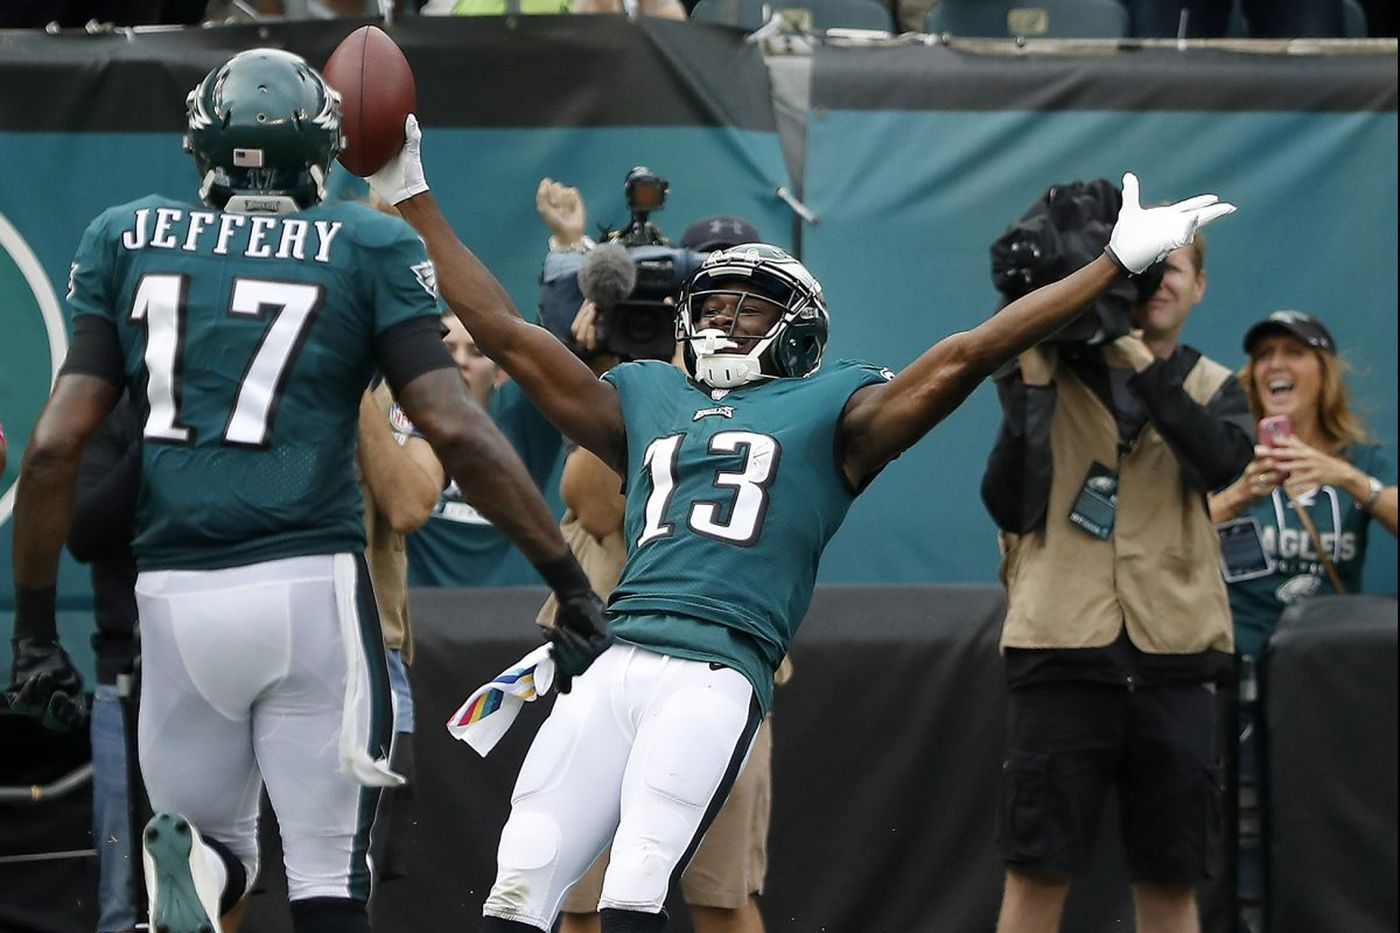 Nelson Agholor might be best story of season so far for Eagles | Mike Sielski